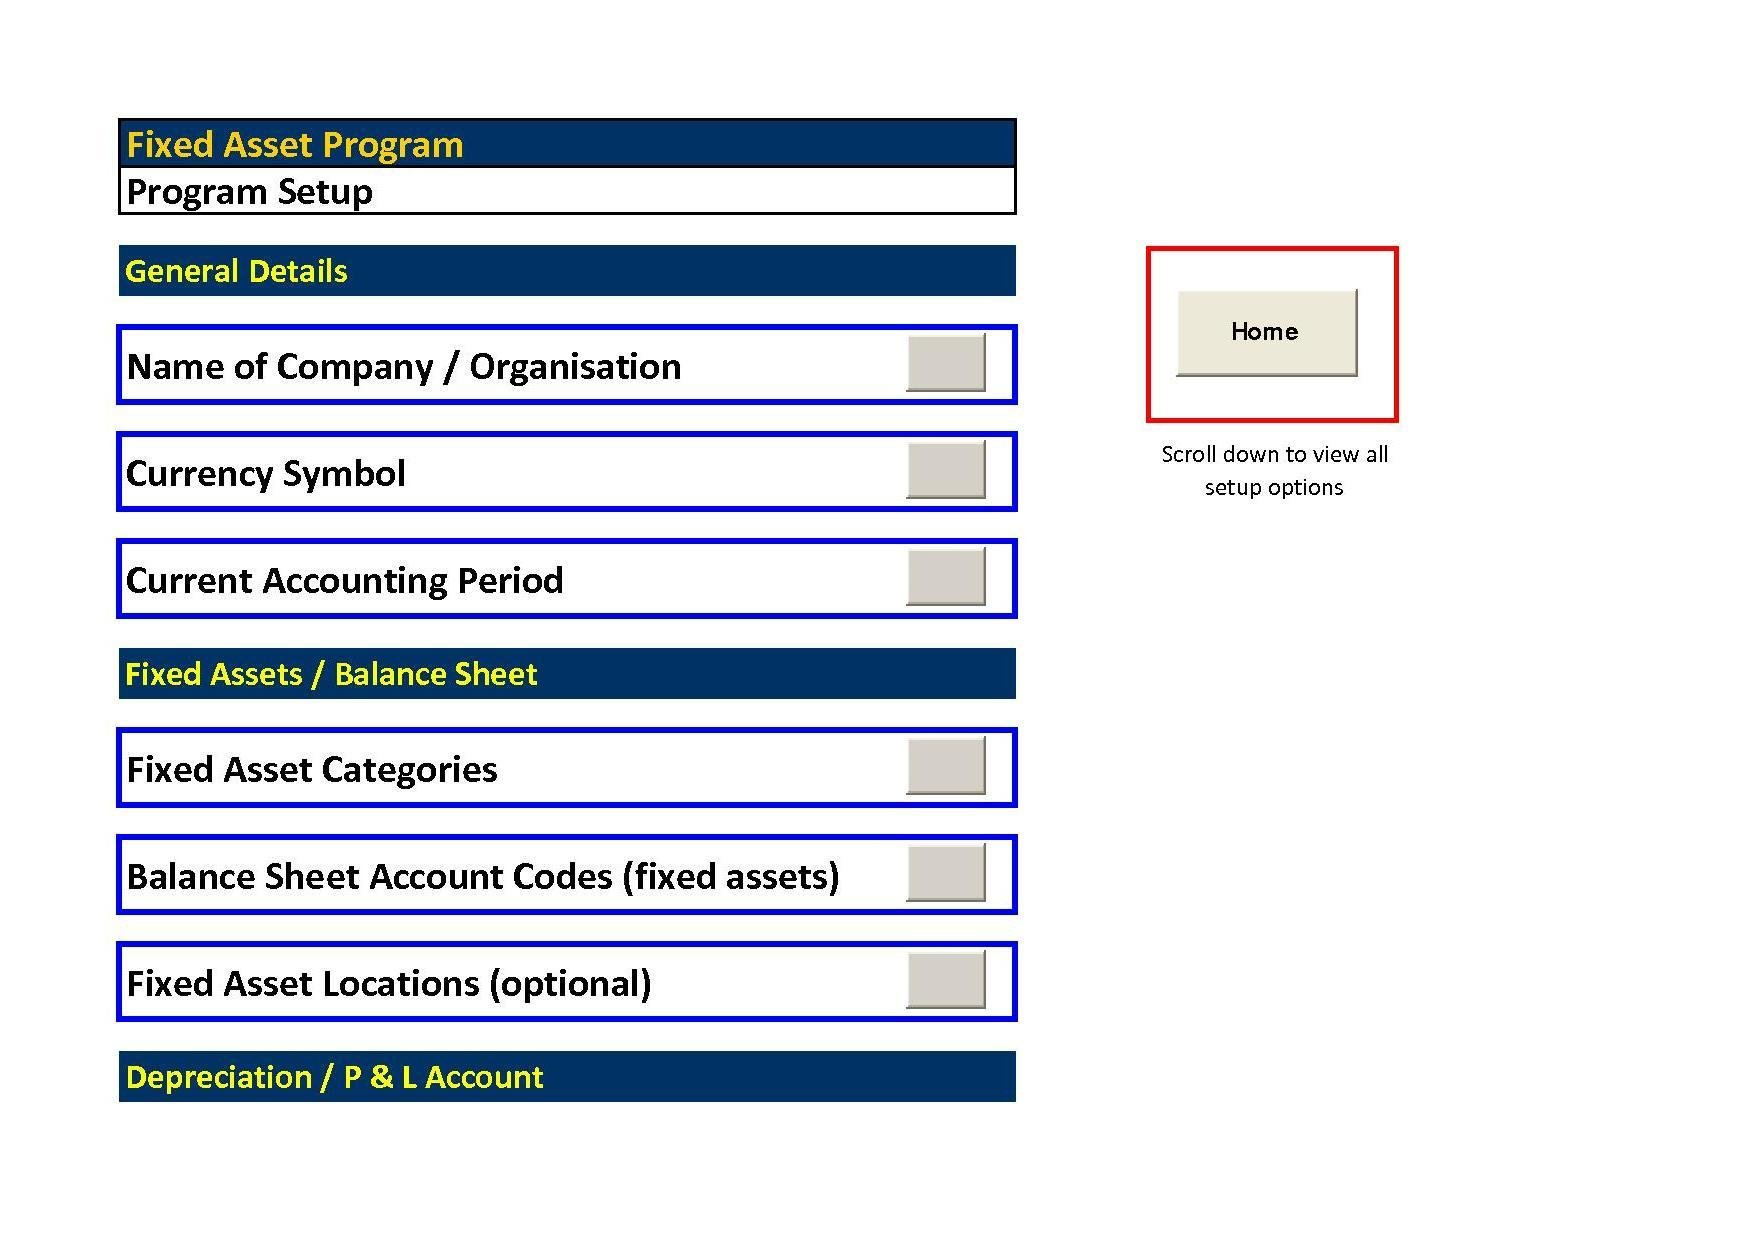 Fixed assets pro excel download sourceforge fixed asset report program setup pronofoot35fo Image collections